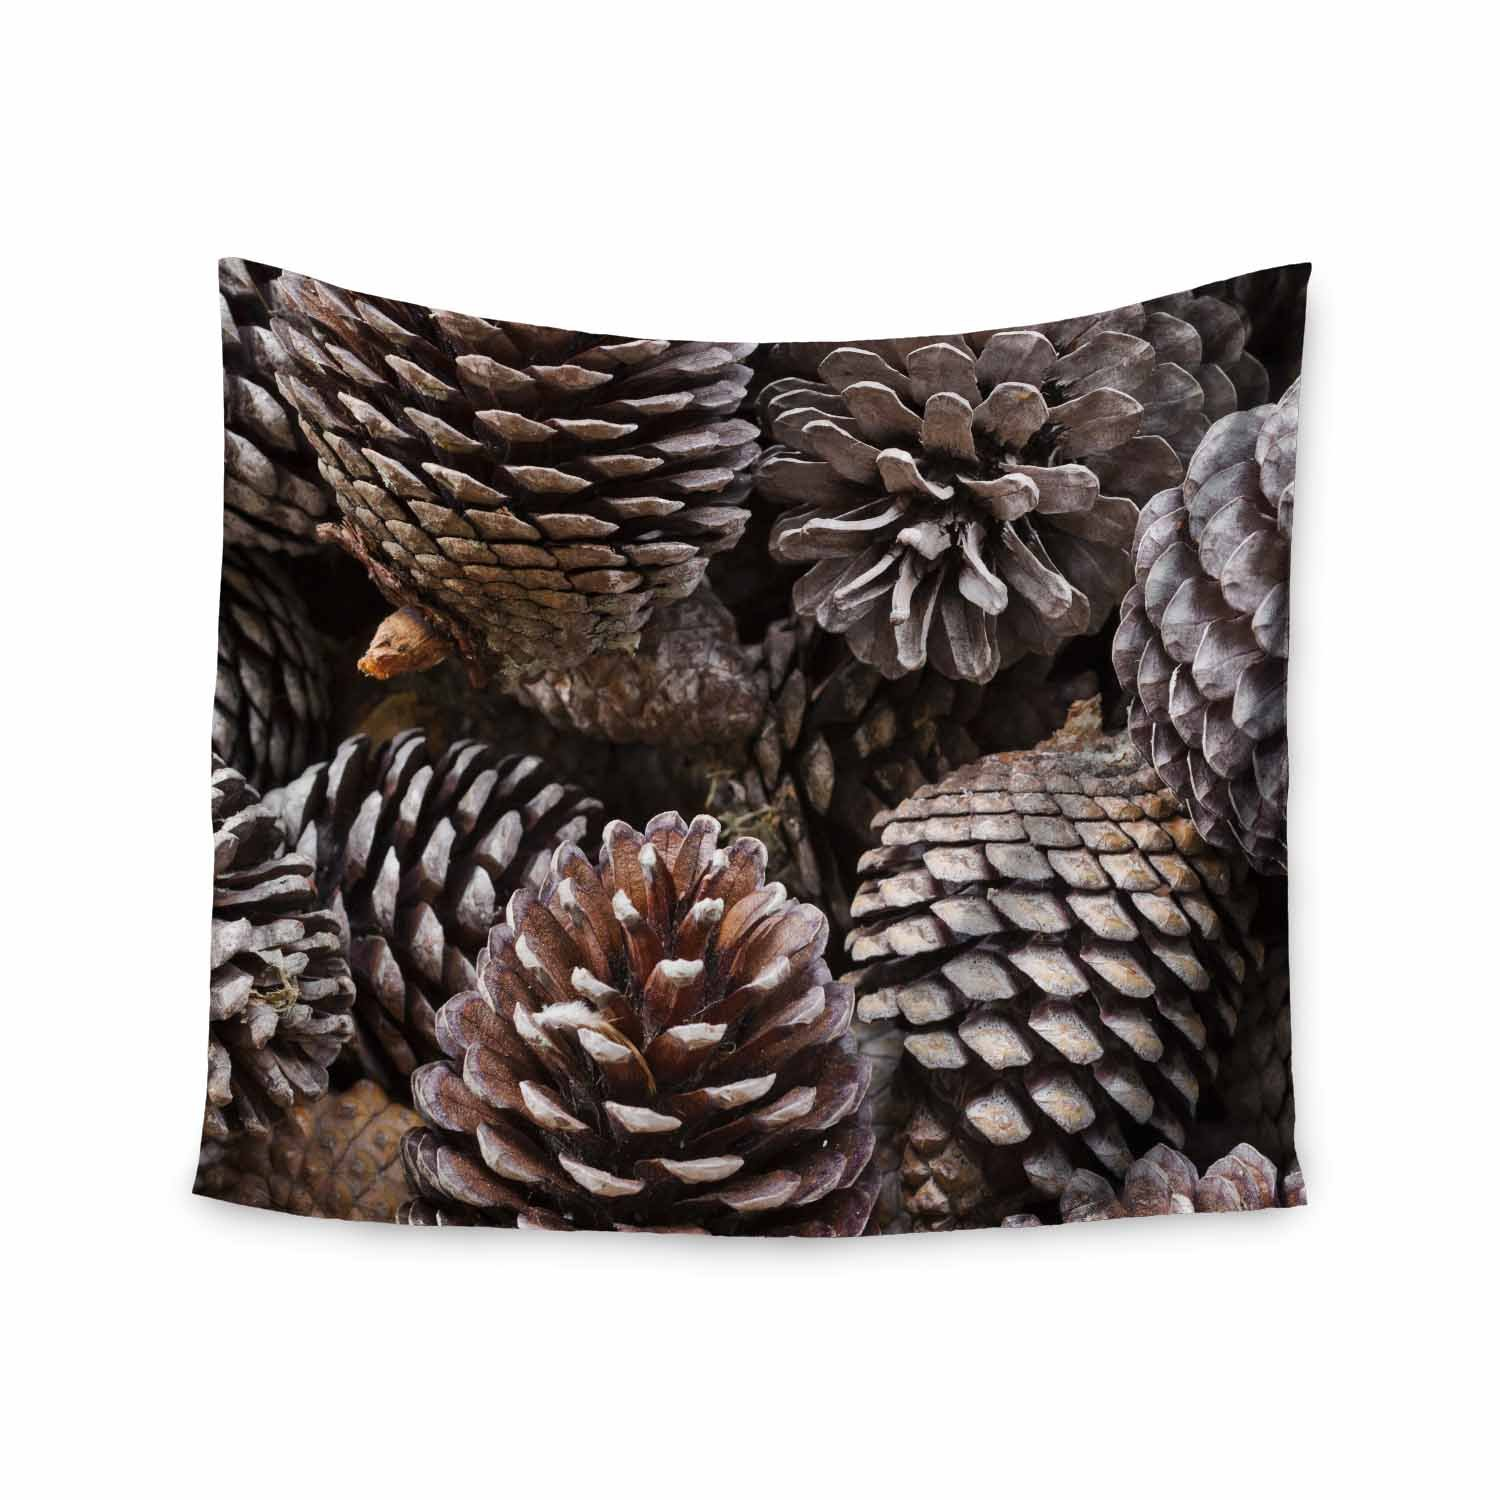 68 x 80 Wall Tapestry Kess InHouse Susan Sanders Pine Cones Brown Tan Nature Holiday Photography